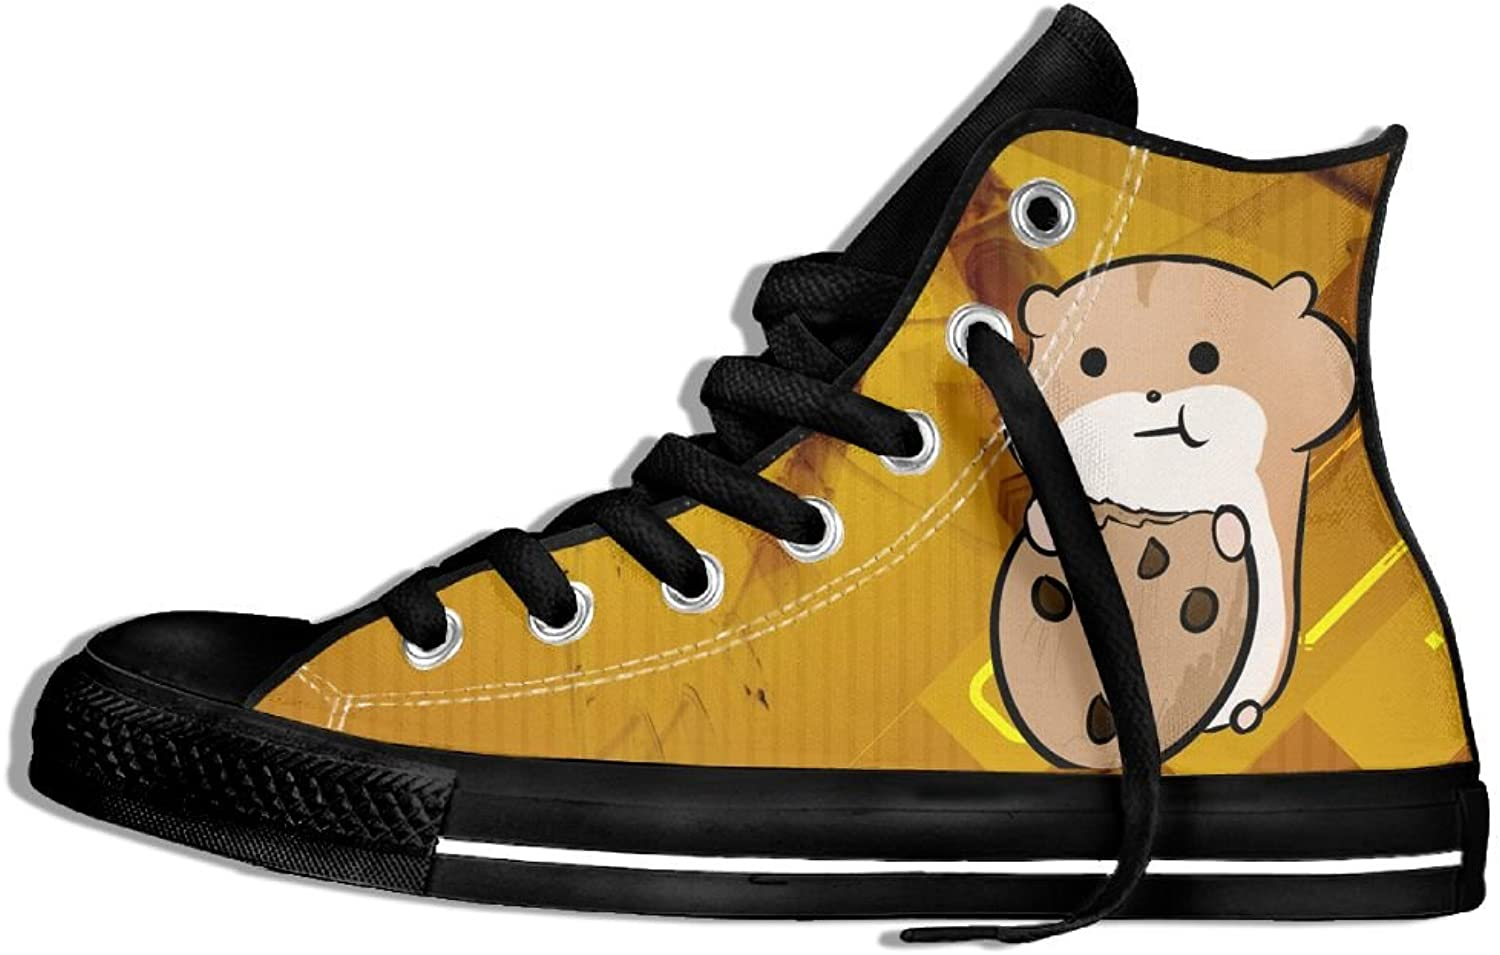 Hamster High Top Classic Casual Canvas Fashion shoes Sneakers For Women & Men